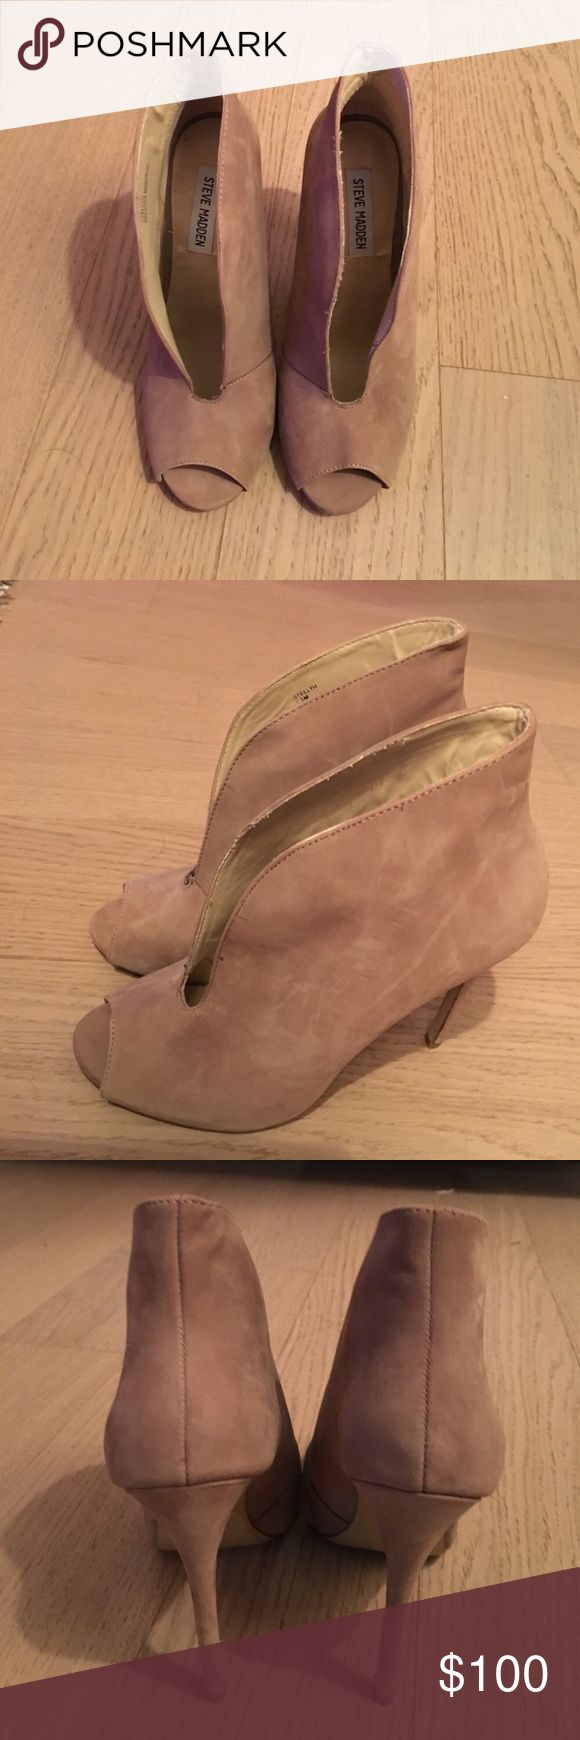 Suede Steve Madden open toe booties. Suede Steve Madden open toe booties. Worn less than a handful of times because I bought them 1/2 a size too big. Steve Madden Shoes Ankle Boots & Booties